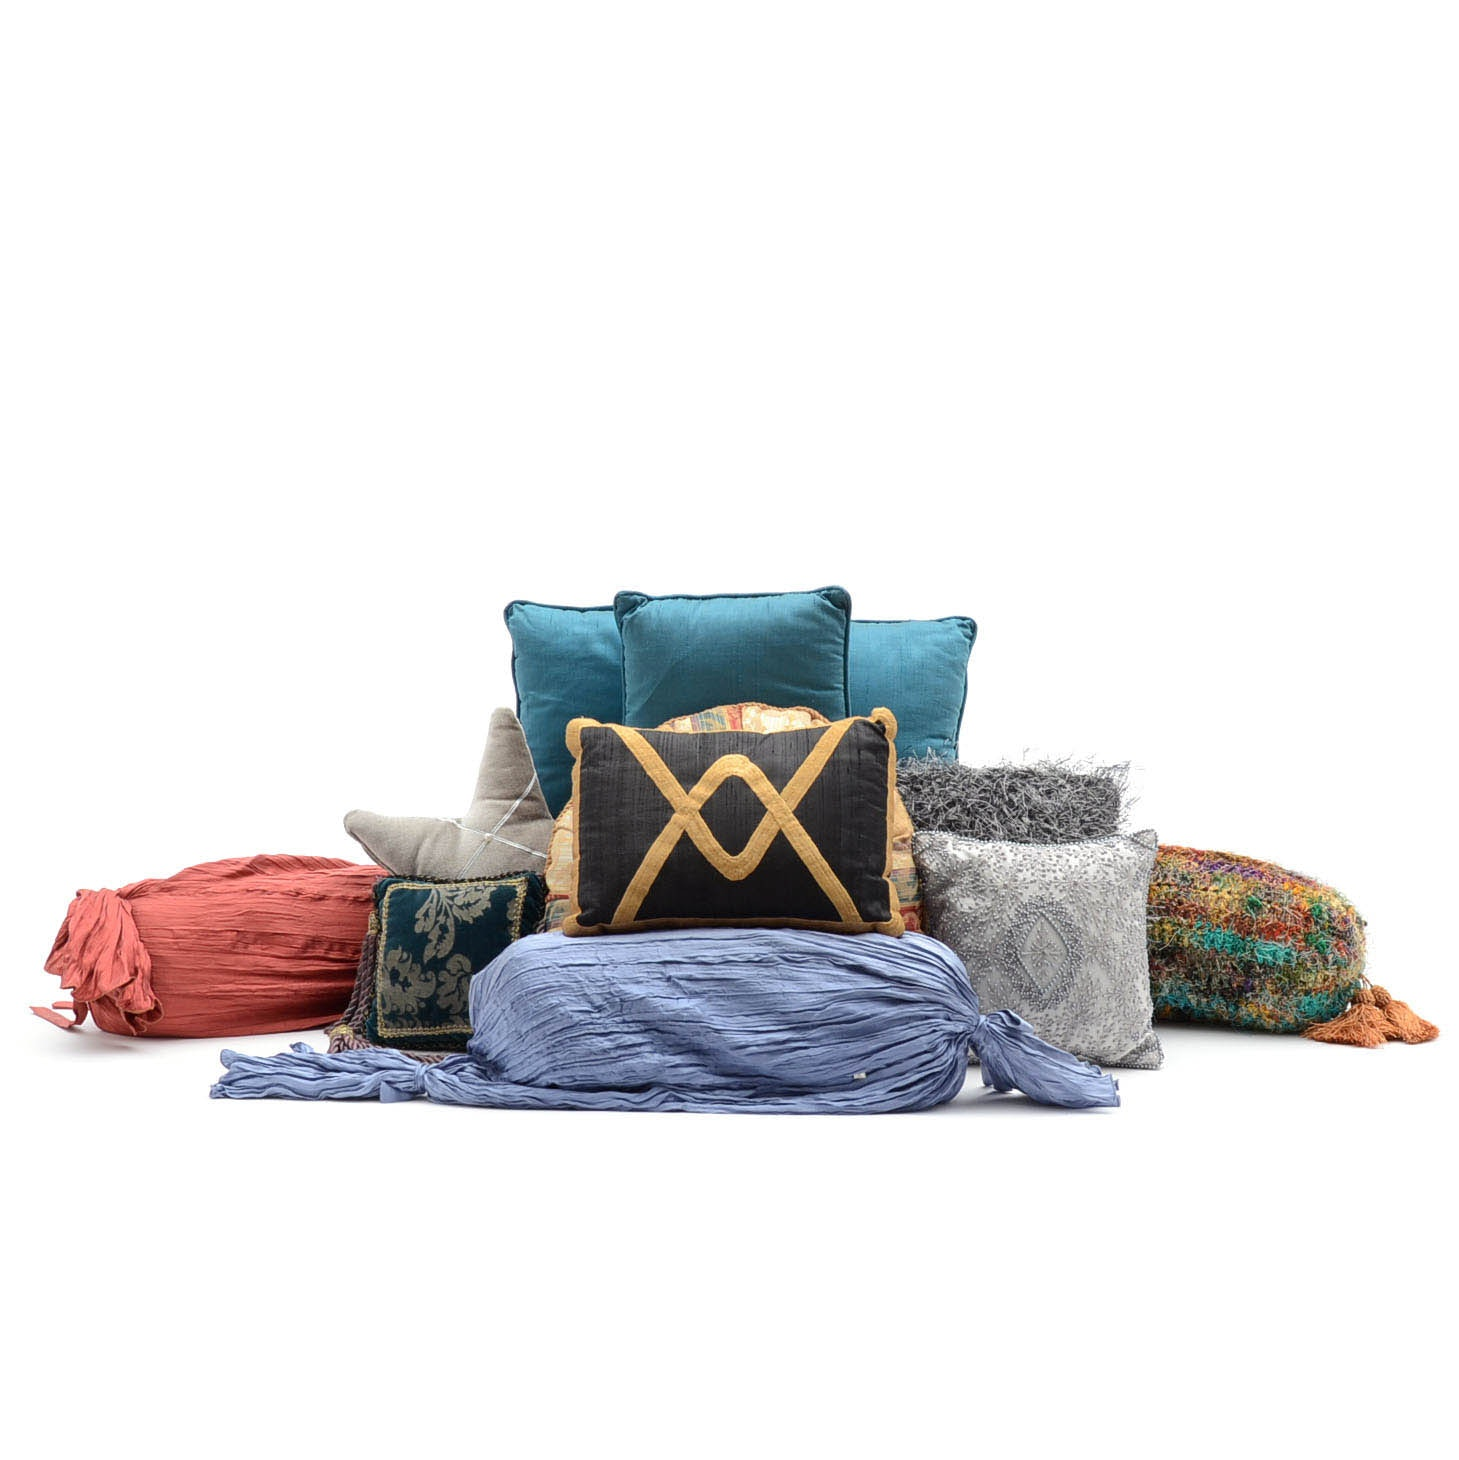 Assortment of Decorative Accent Pillows